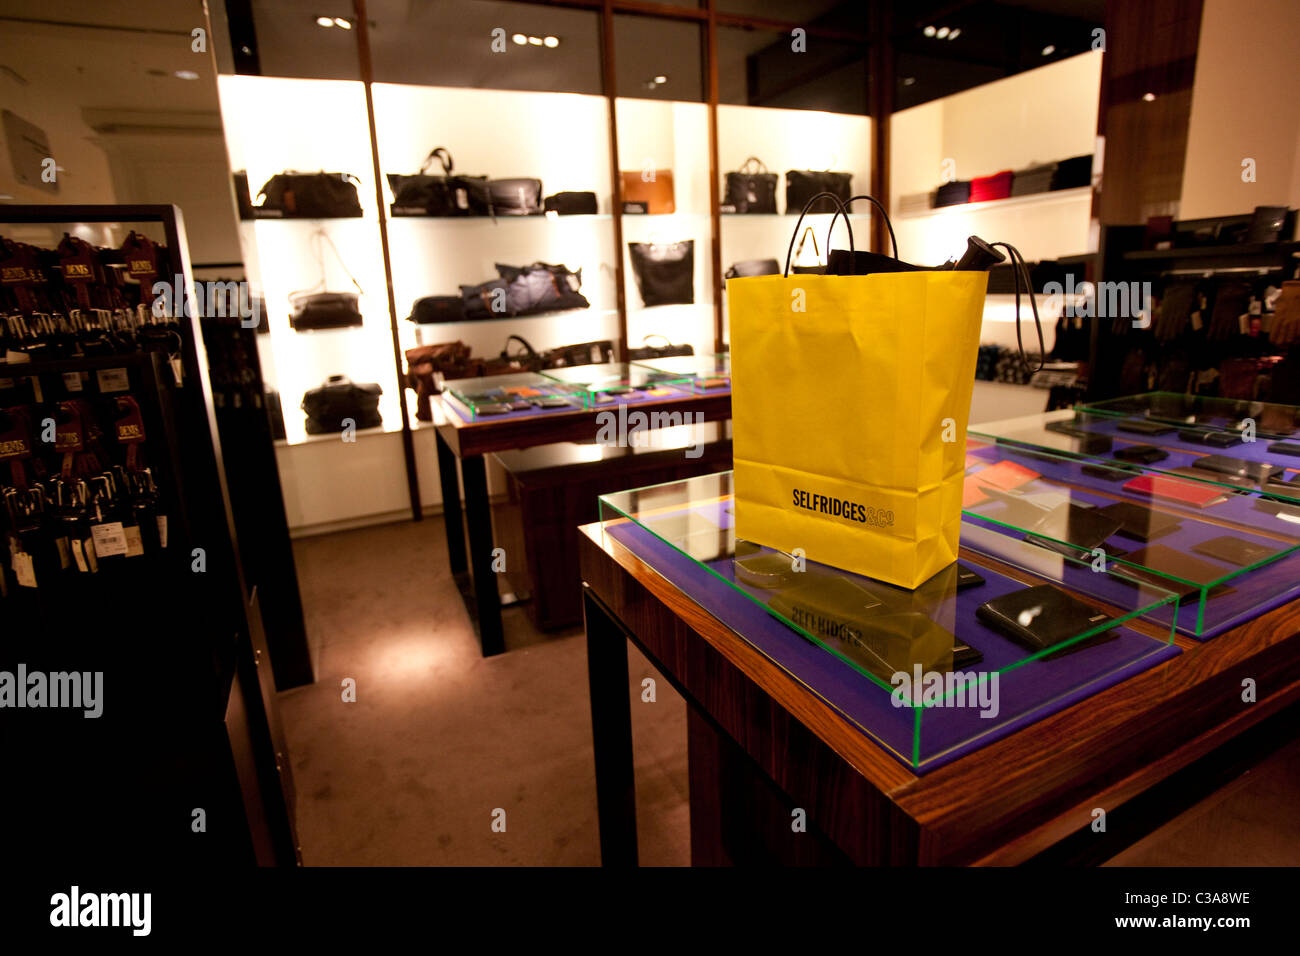 The mens accessories department store in Selfridges. - Stock Image